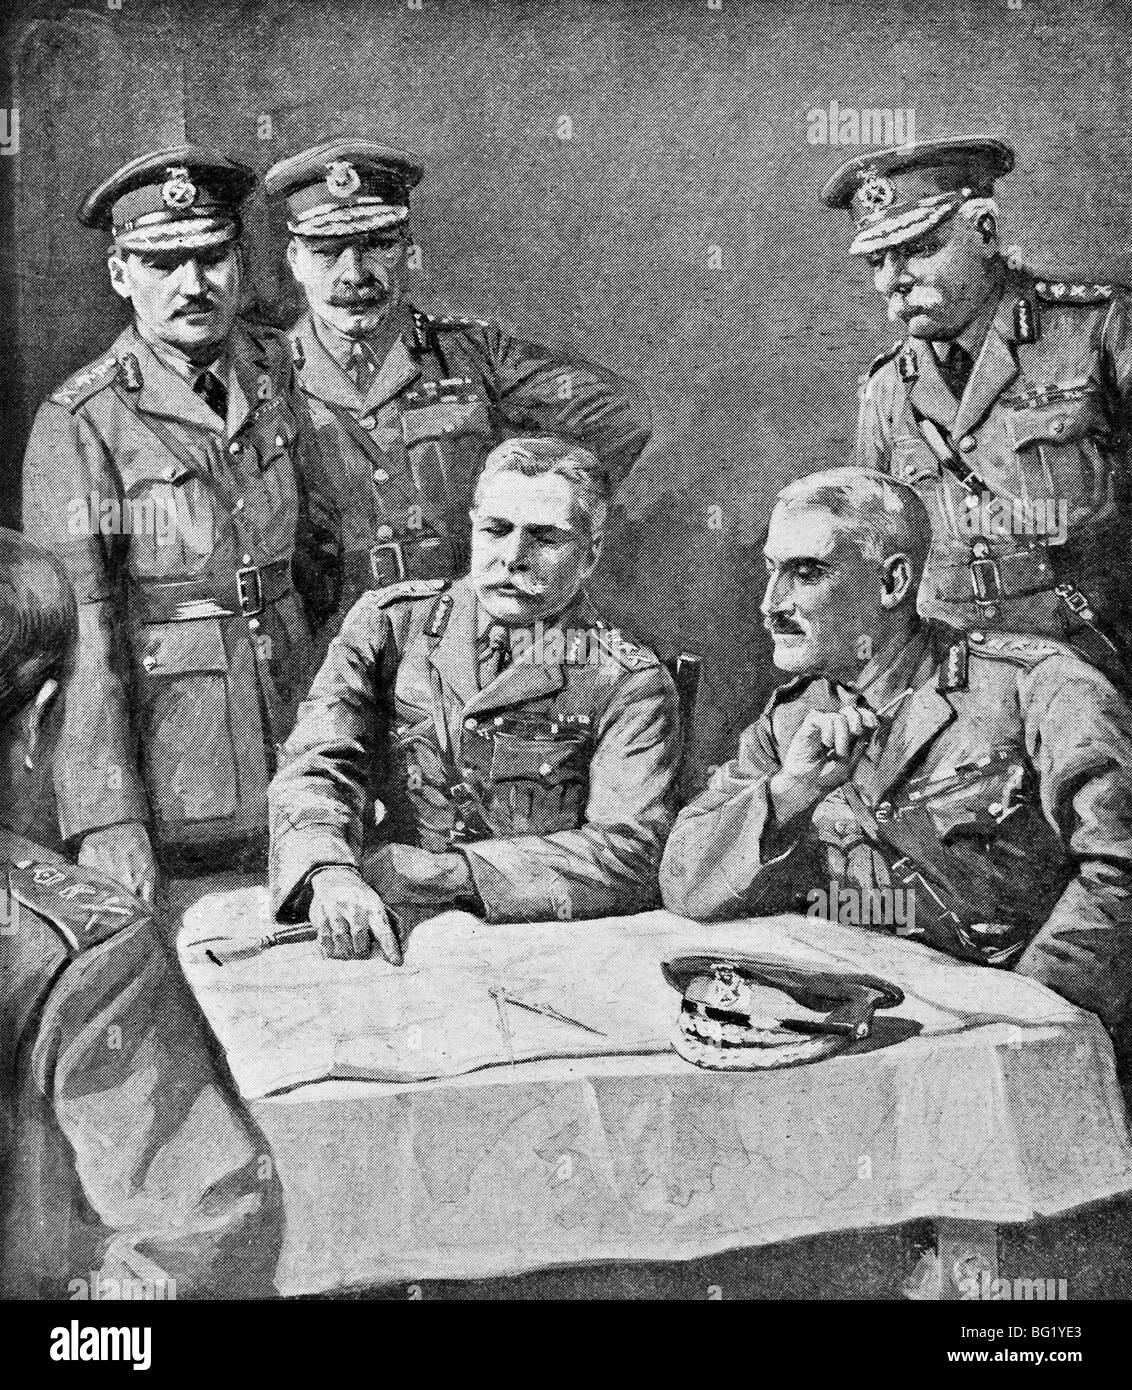 Contemporary World War One illustration of Field Marshal Douglas Haig and British Generals planning the Third Battle - Stock Image